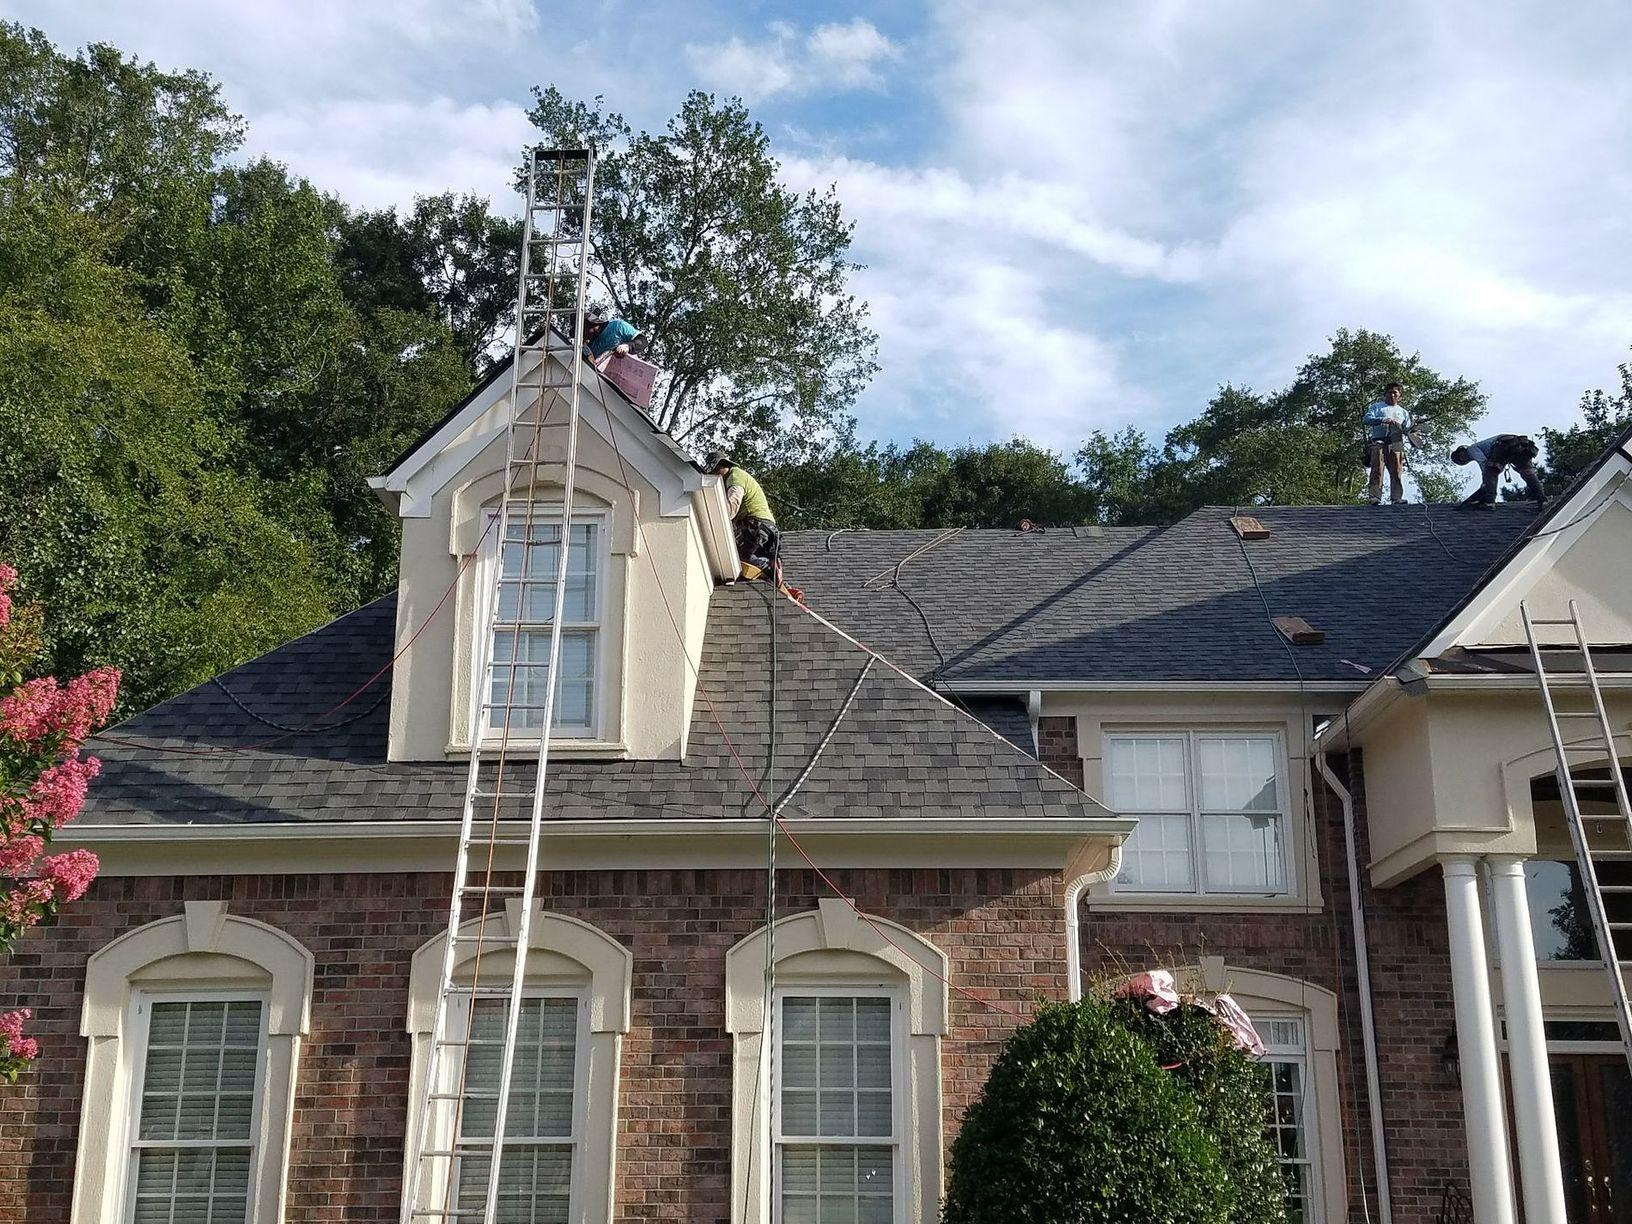 After the Storm Damaged Roof was Replaced